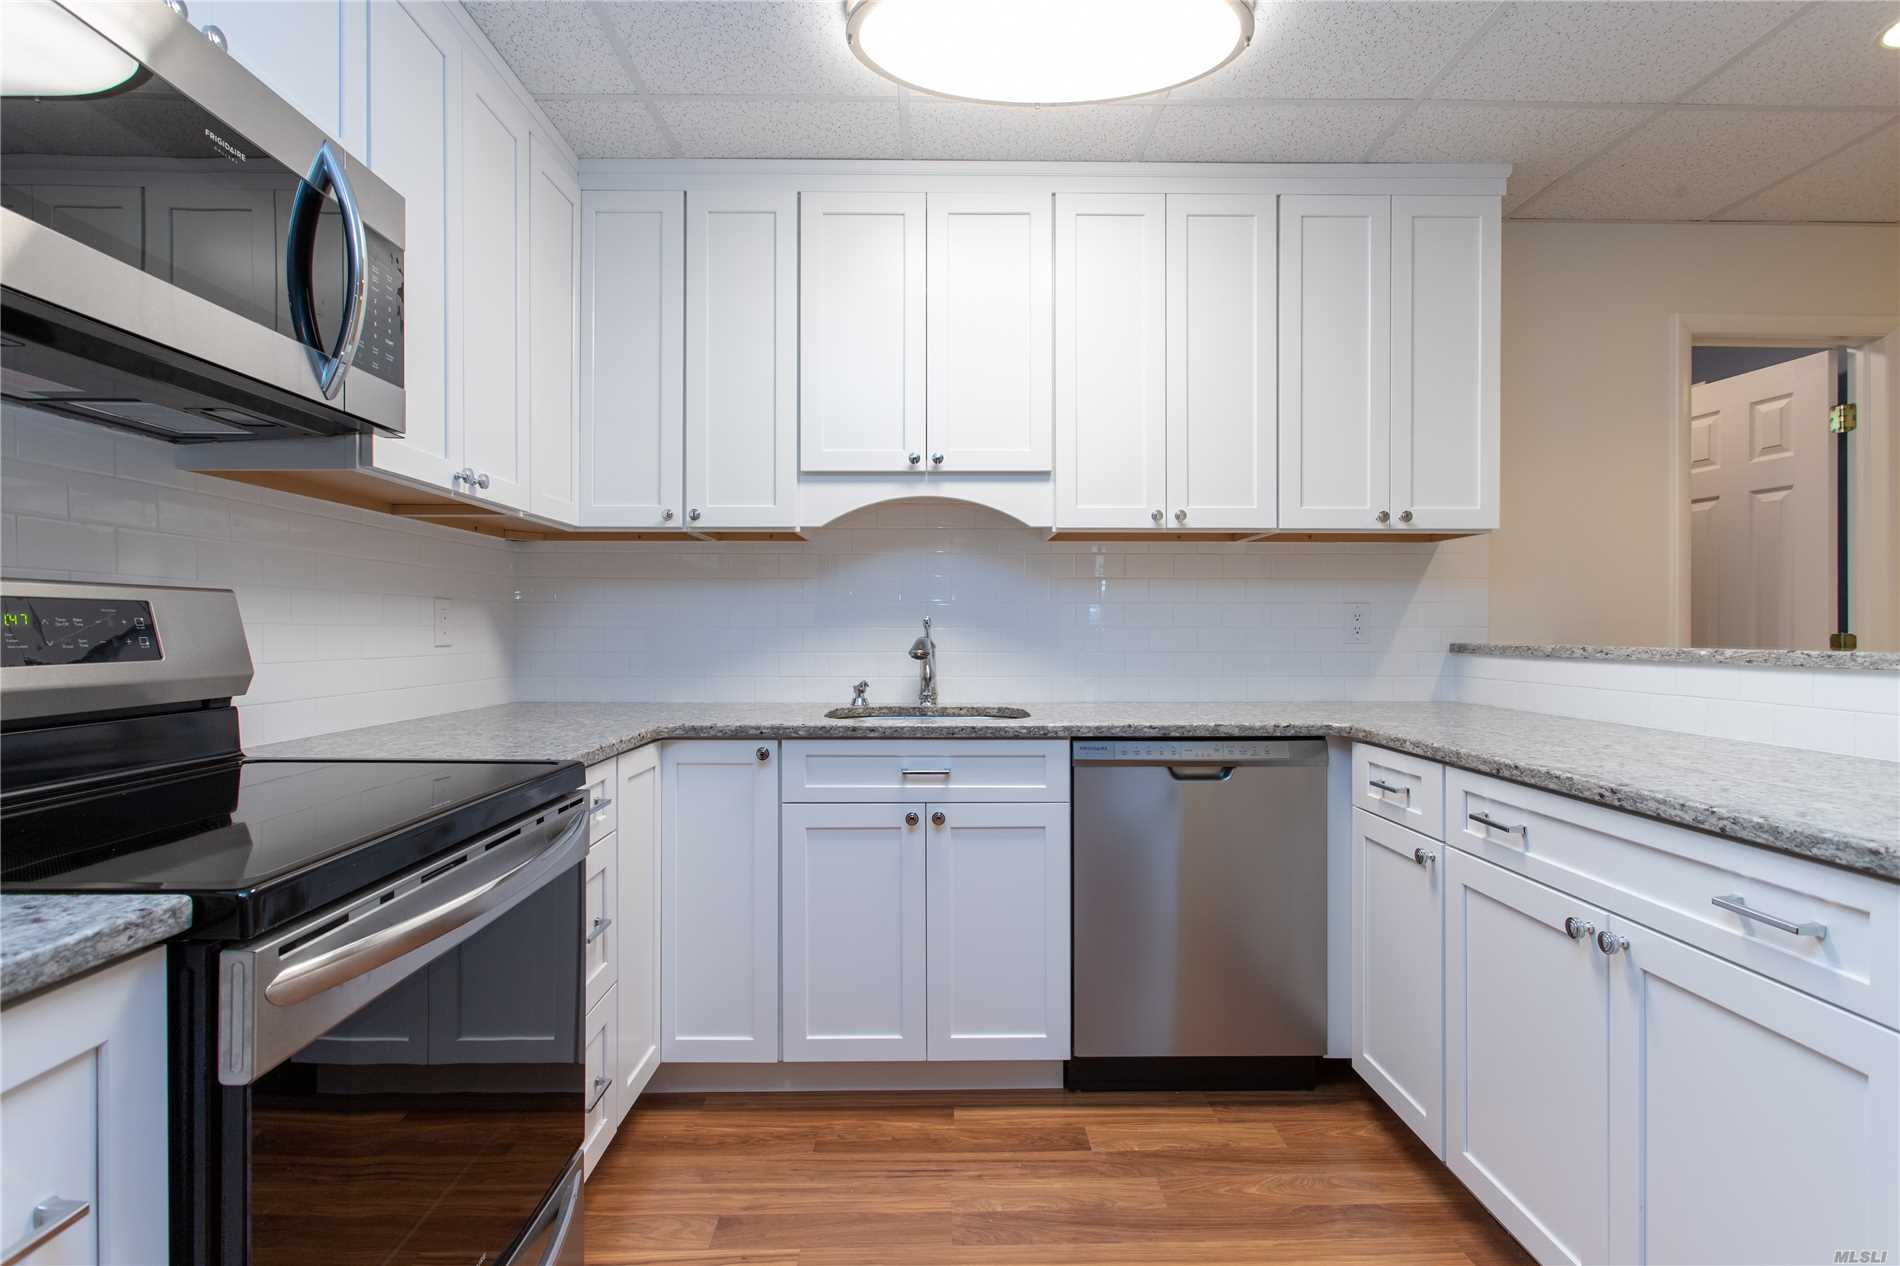 Prime Northport Village Location! All New Features Stainless Steel Appliances, W/ Dishwasher And Granite Counter Tops. Washer & Dryer, Beautiful Huge One Bedroom, One Bath, Living Room W/Sliders To Yard. Rent Inc. Heat, Cac, Electric, & Water. No Smoking, No Pets -- Do Not Ask. Short Distance To Downtown Village, Shops, Restaurants, Theater And Dock. A Must See!!